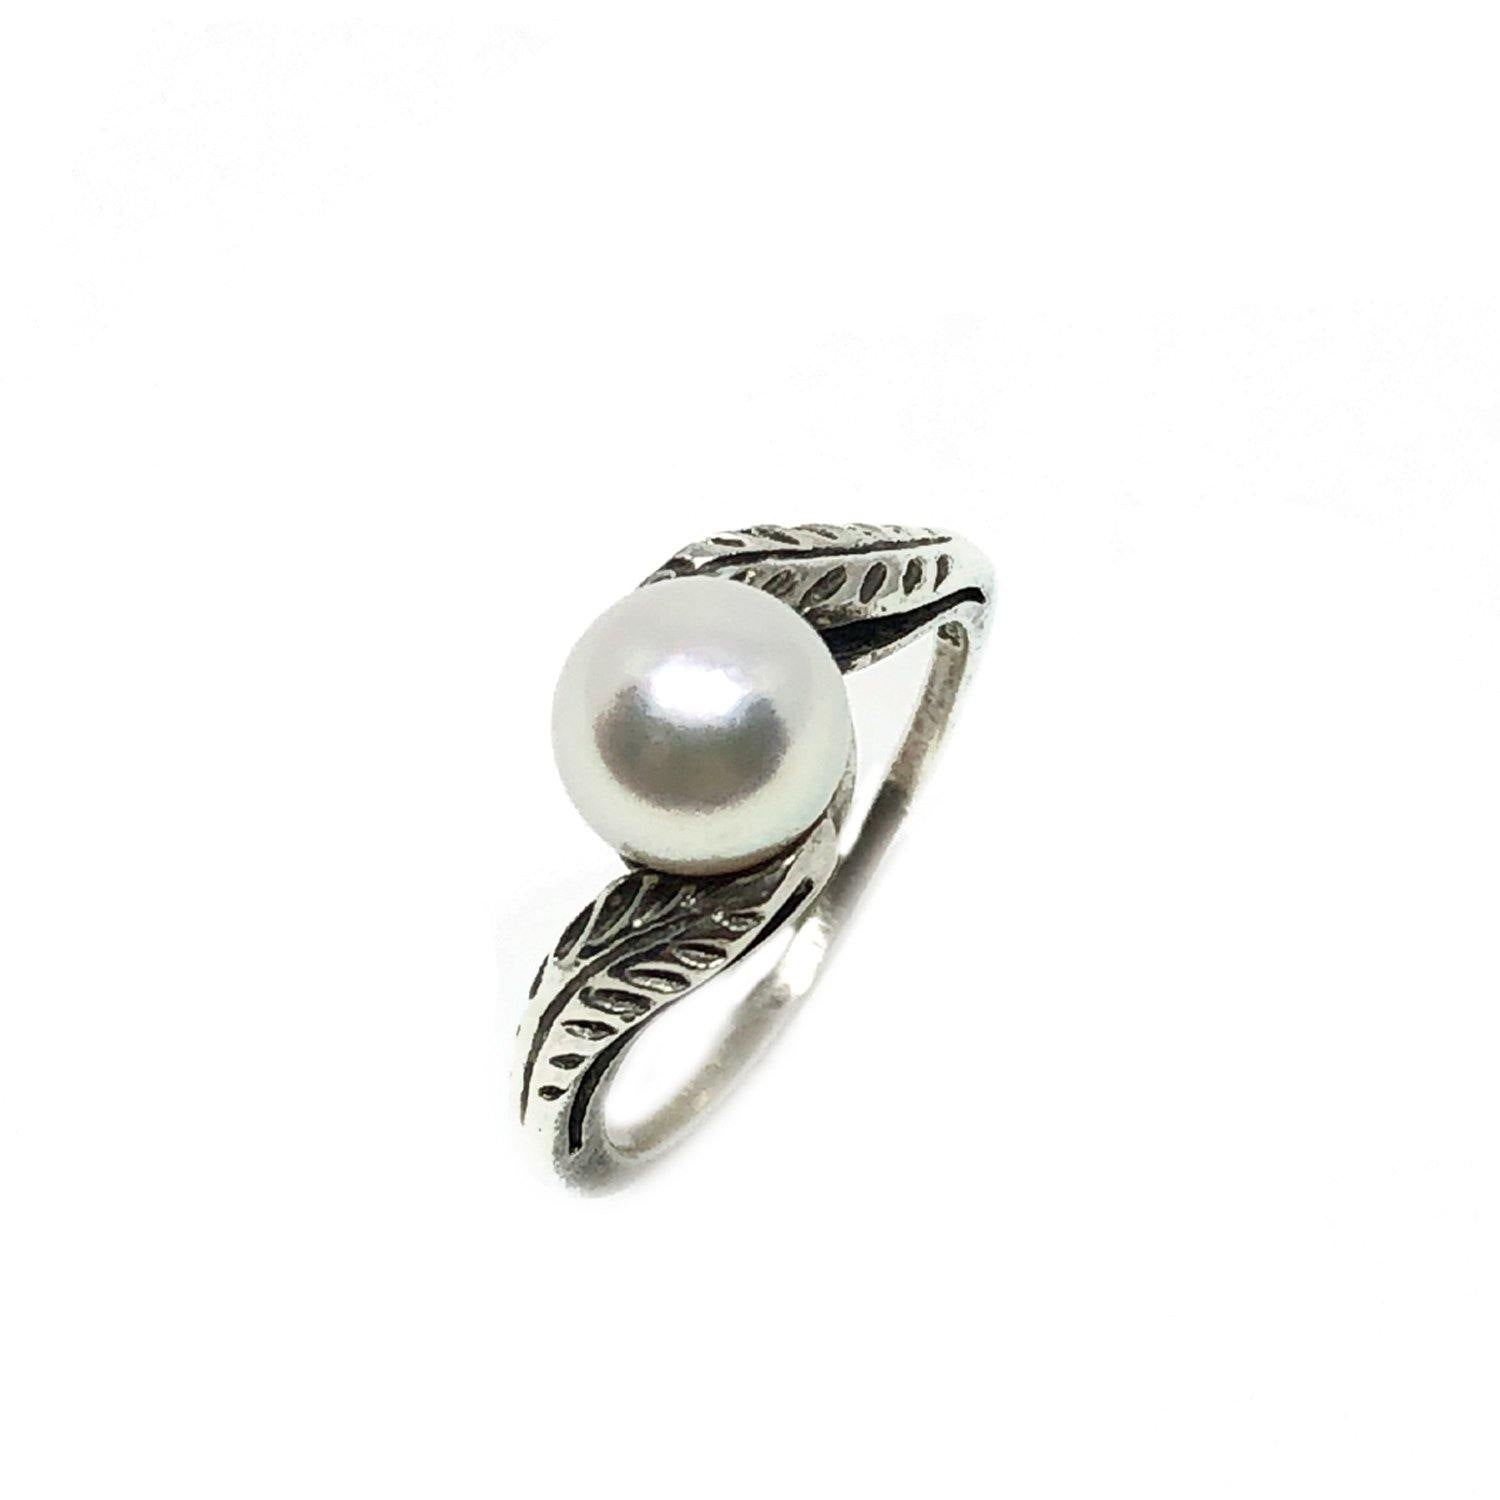 Leaf Japanese Saltwater Cultured Akoya Pearl Ring- Sterling Silver Sz 5